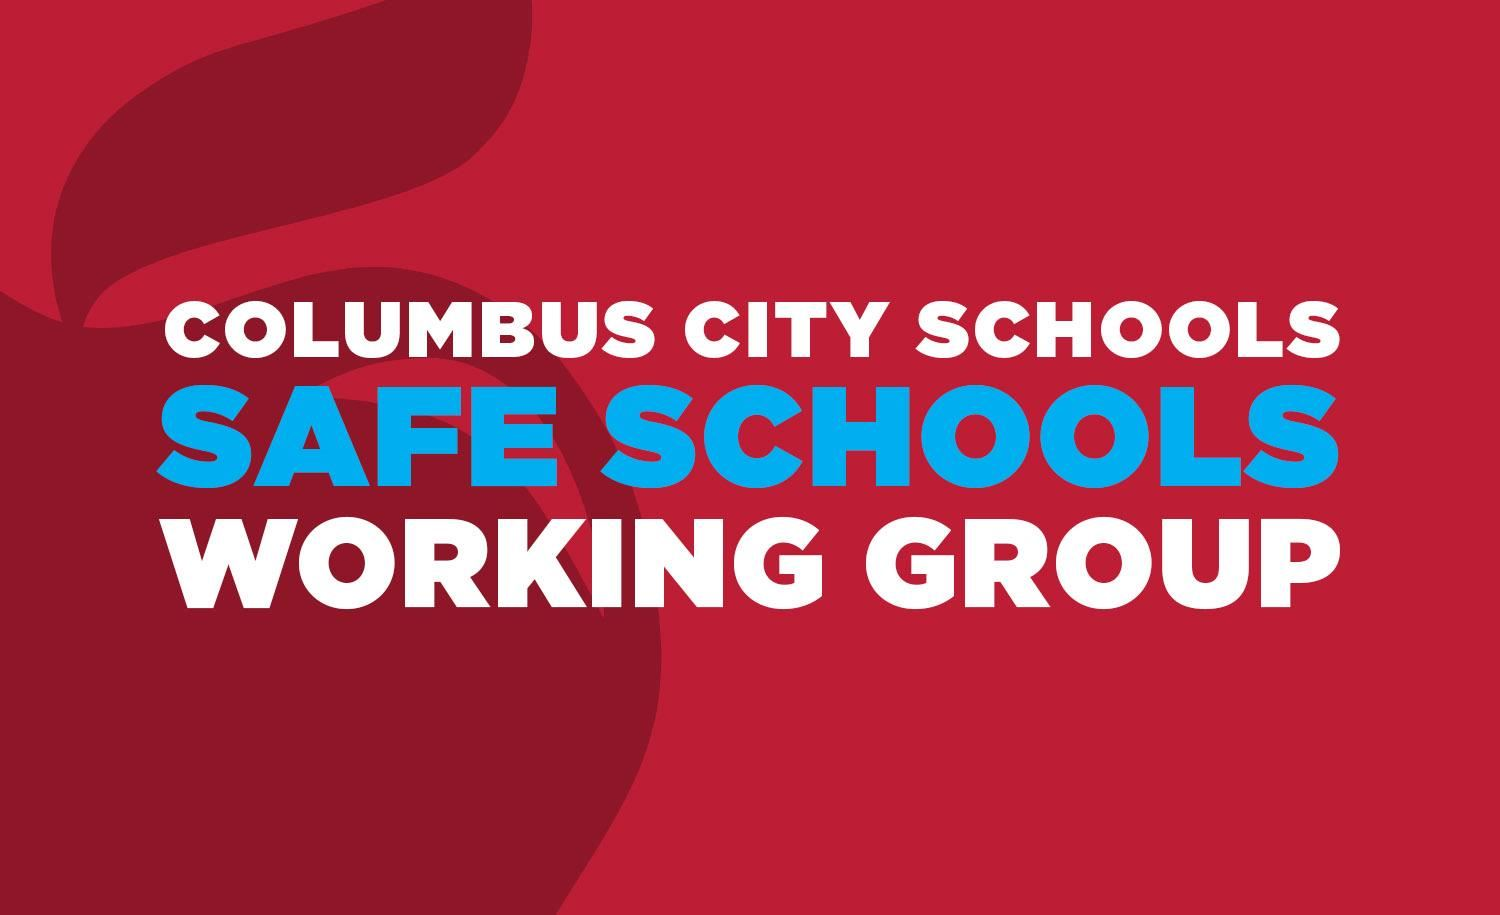 Safe Schools Working Group